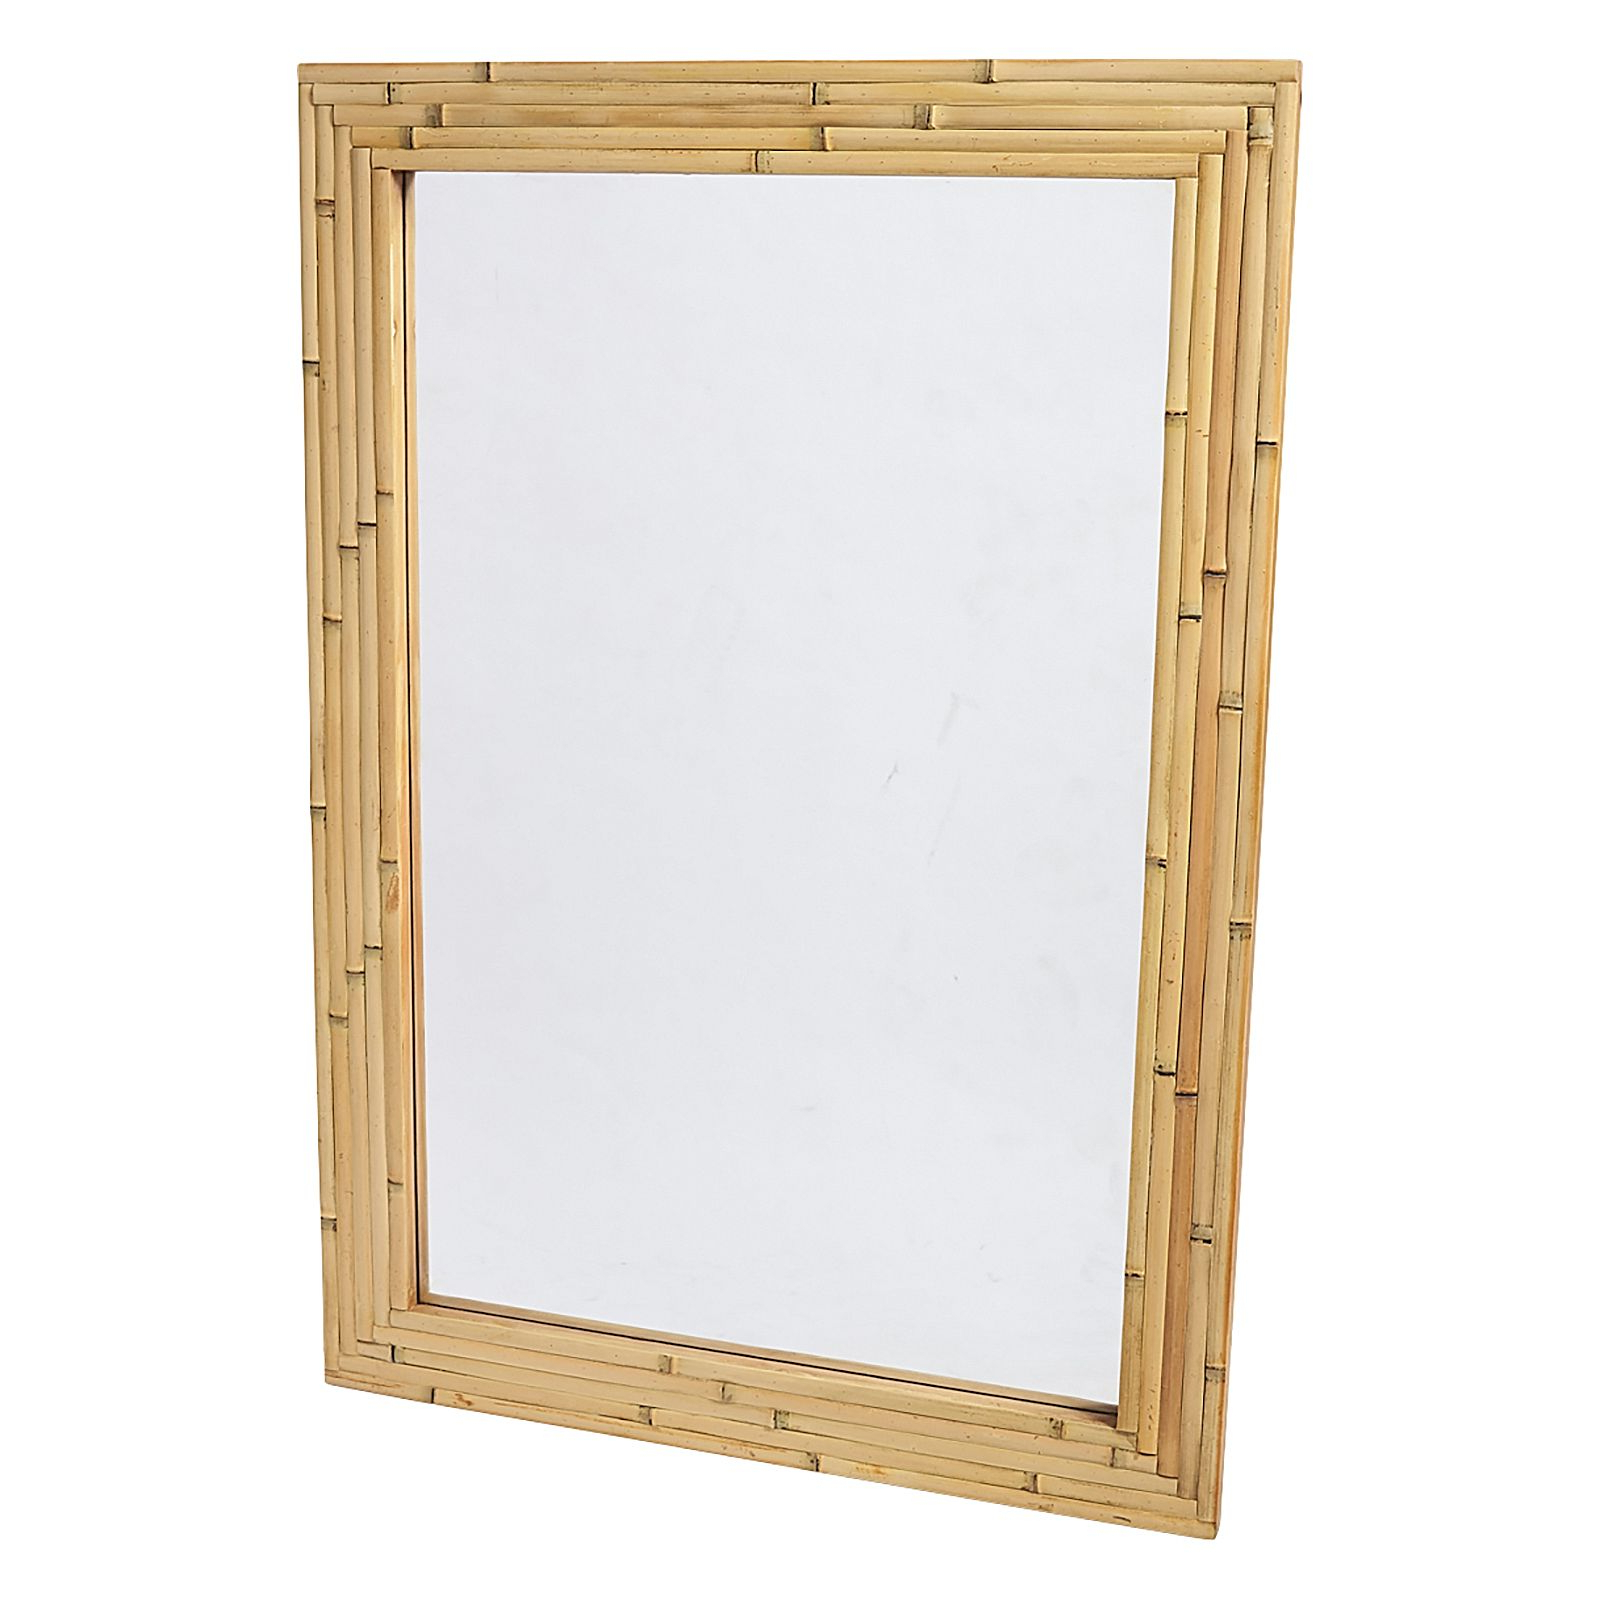 Bamboo Wall Mirrors In Well Known Cayman Bamboo Wall Mirror (View 7 of 20)